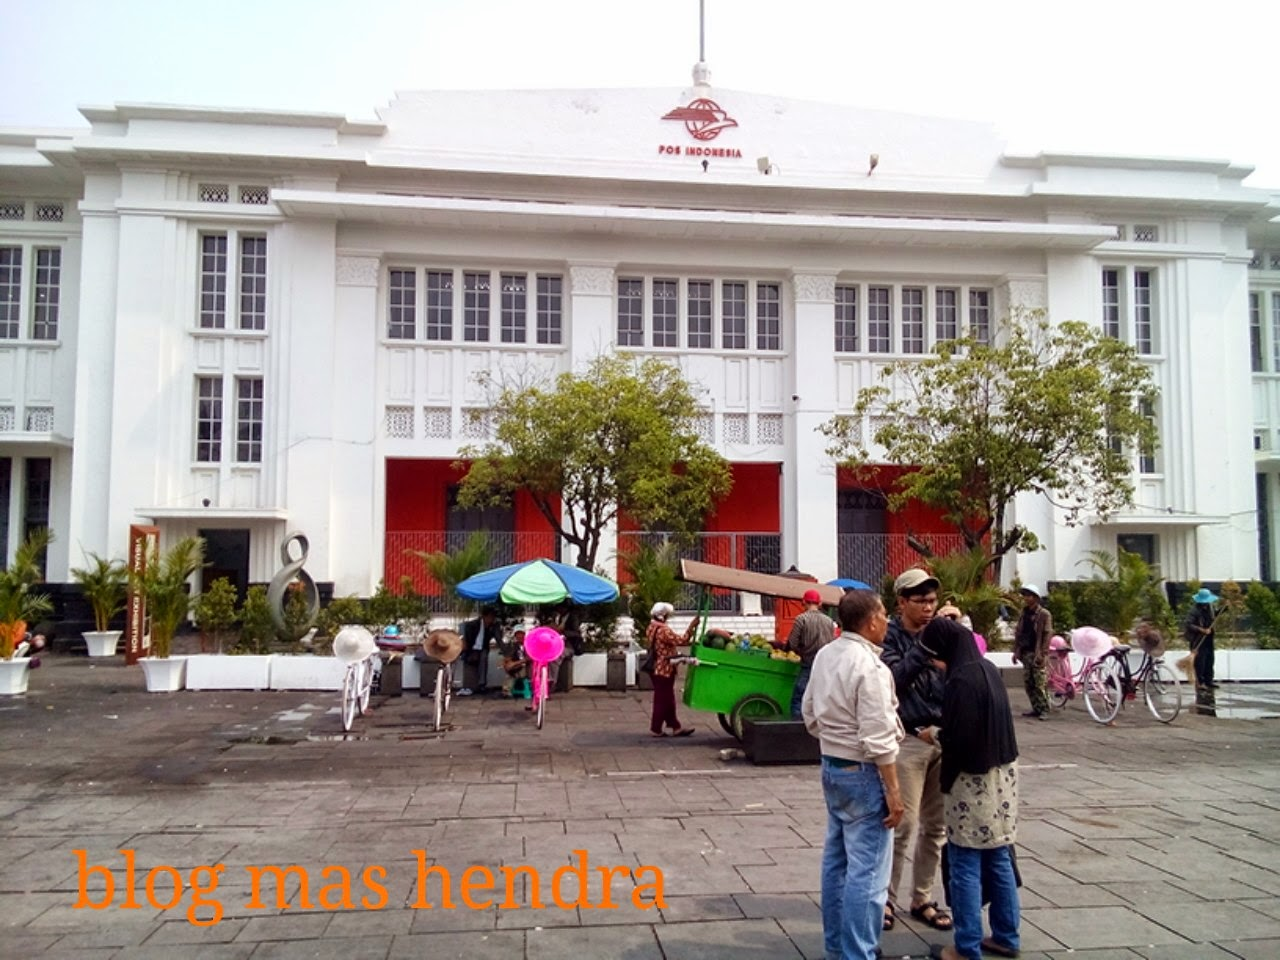 Indonesian post office museum in Kota Tua